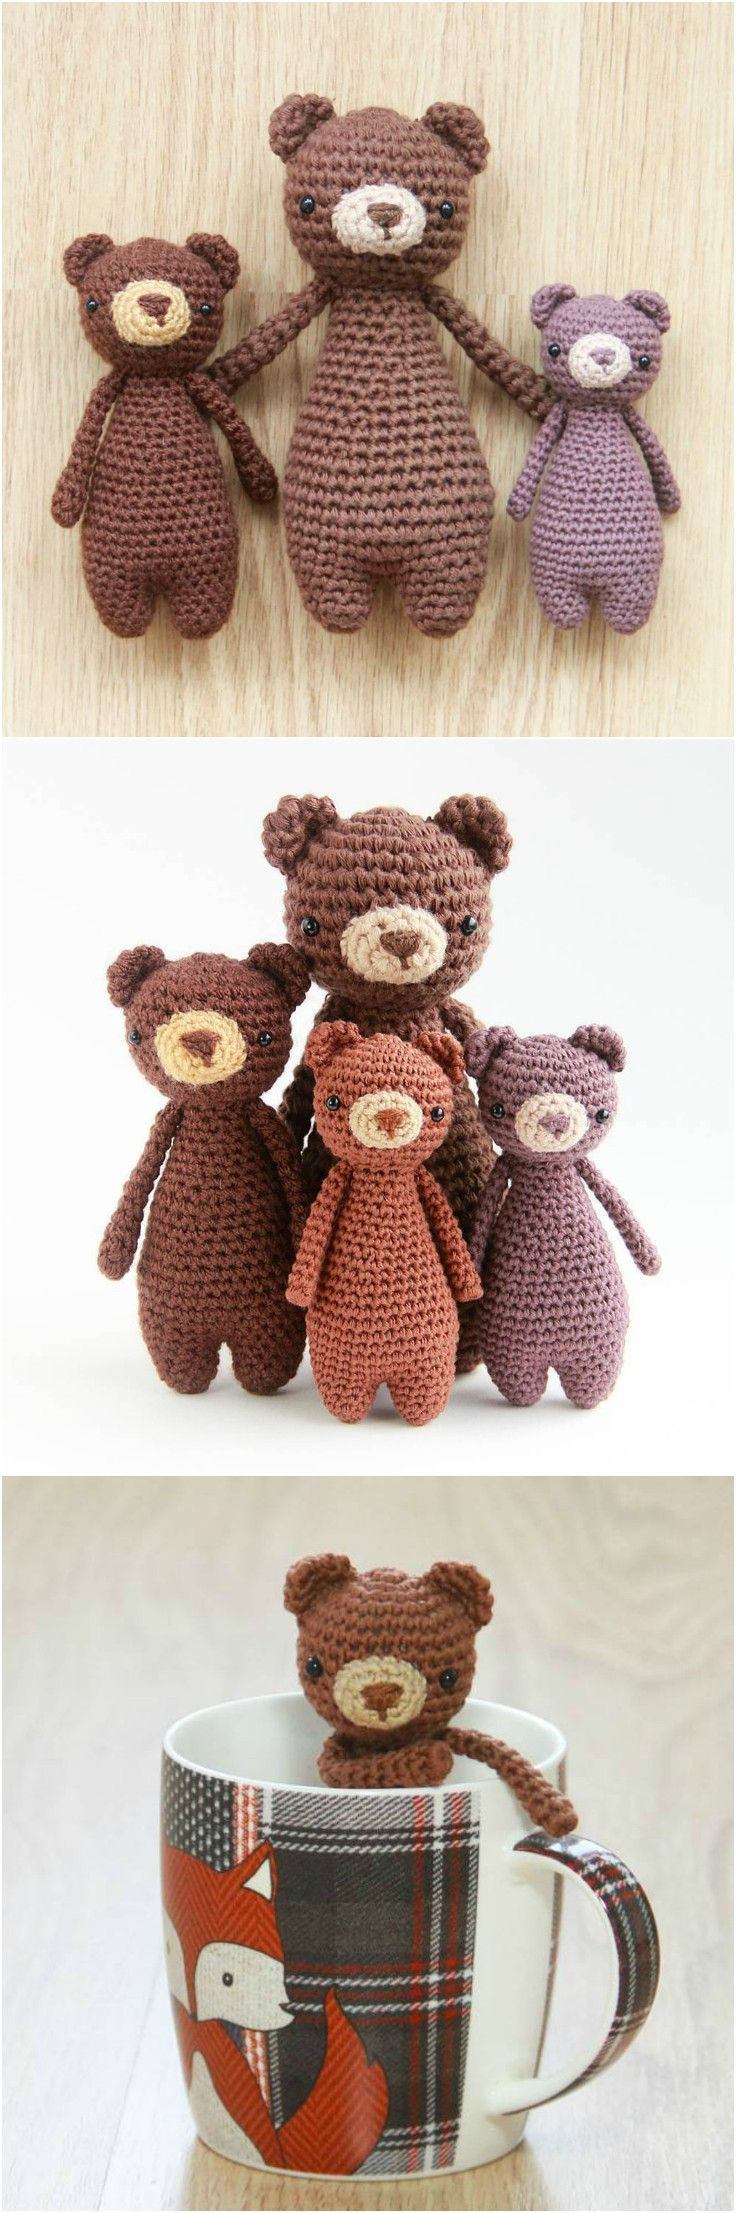 Mini Bear crochet pattern by Little Bear Crochets: www.littlebearcrochets.com  #littlebearcrochets #amigurumi